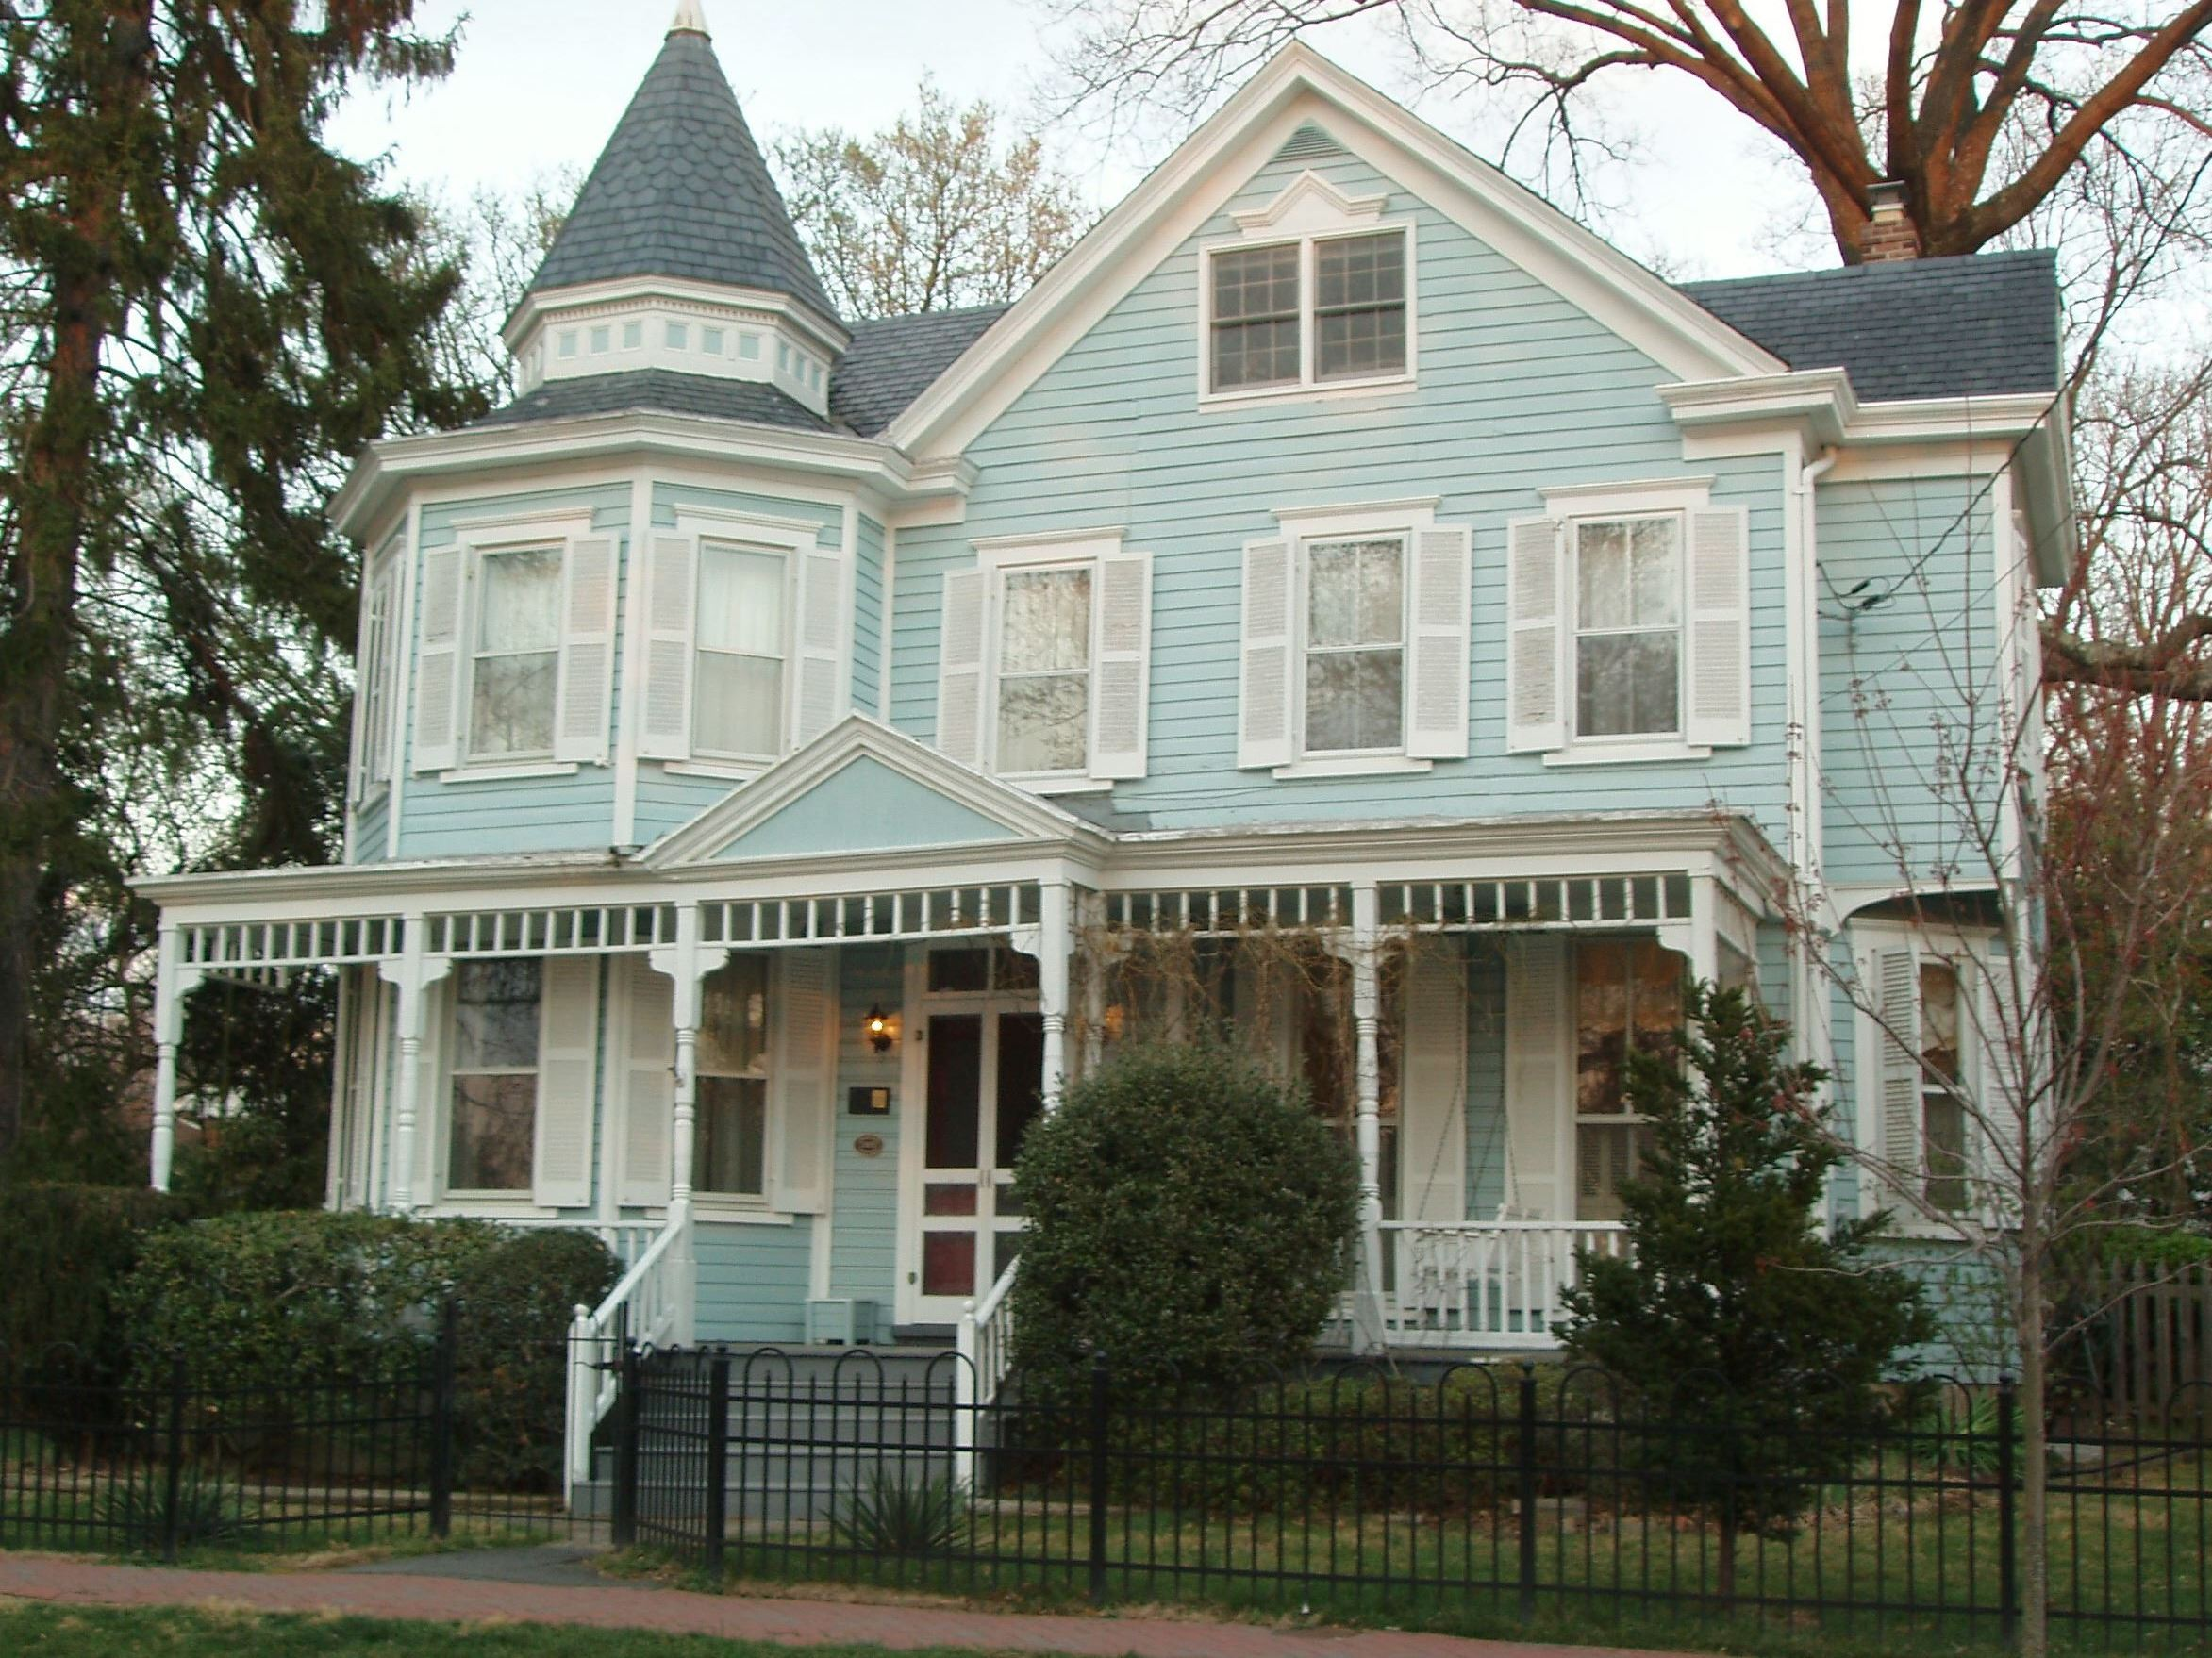 Blue Historic Victorian House